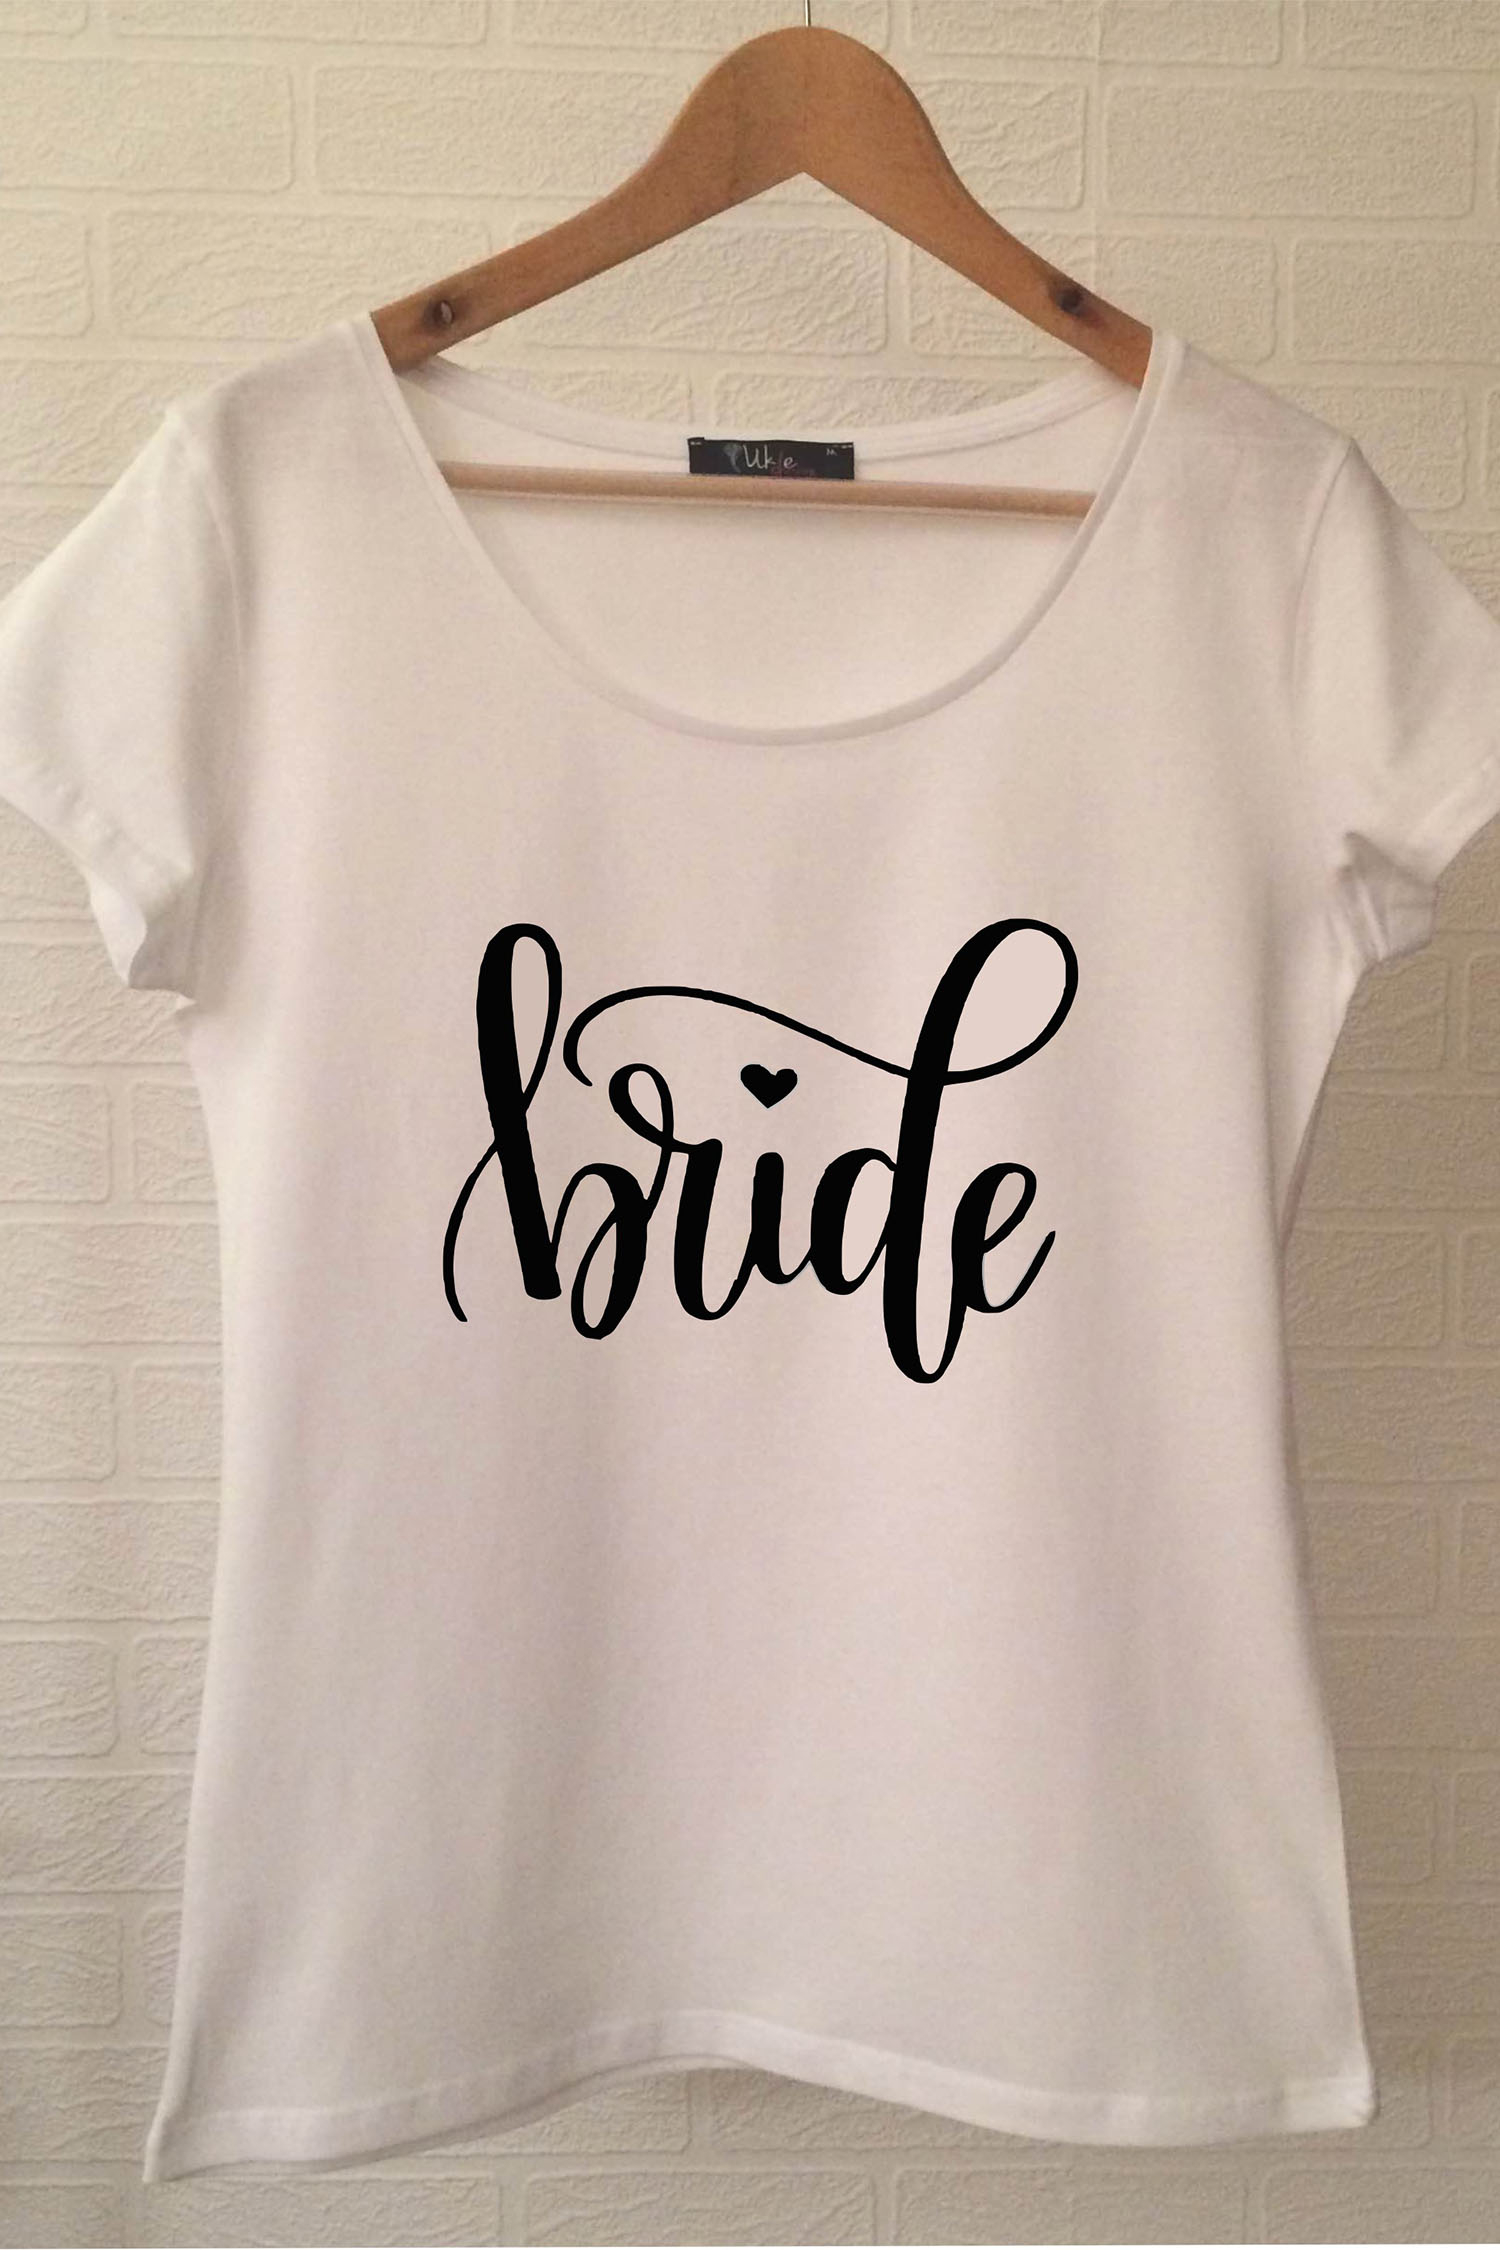 Bride T-shirt ukde112